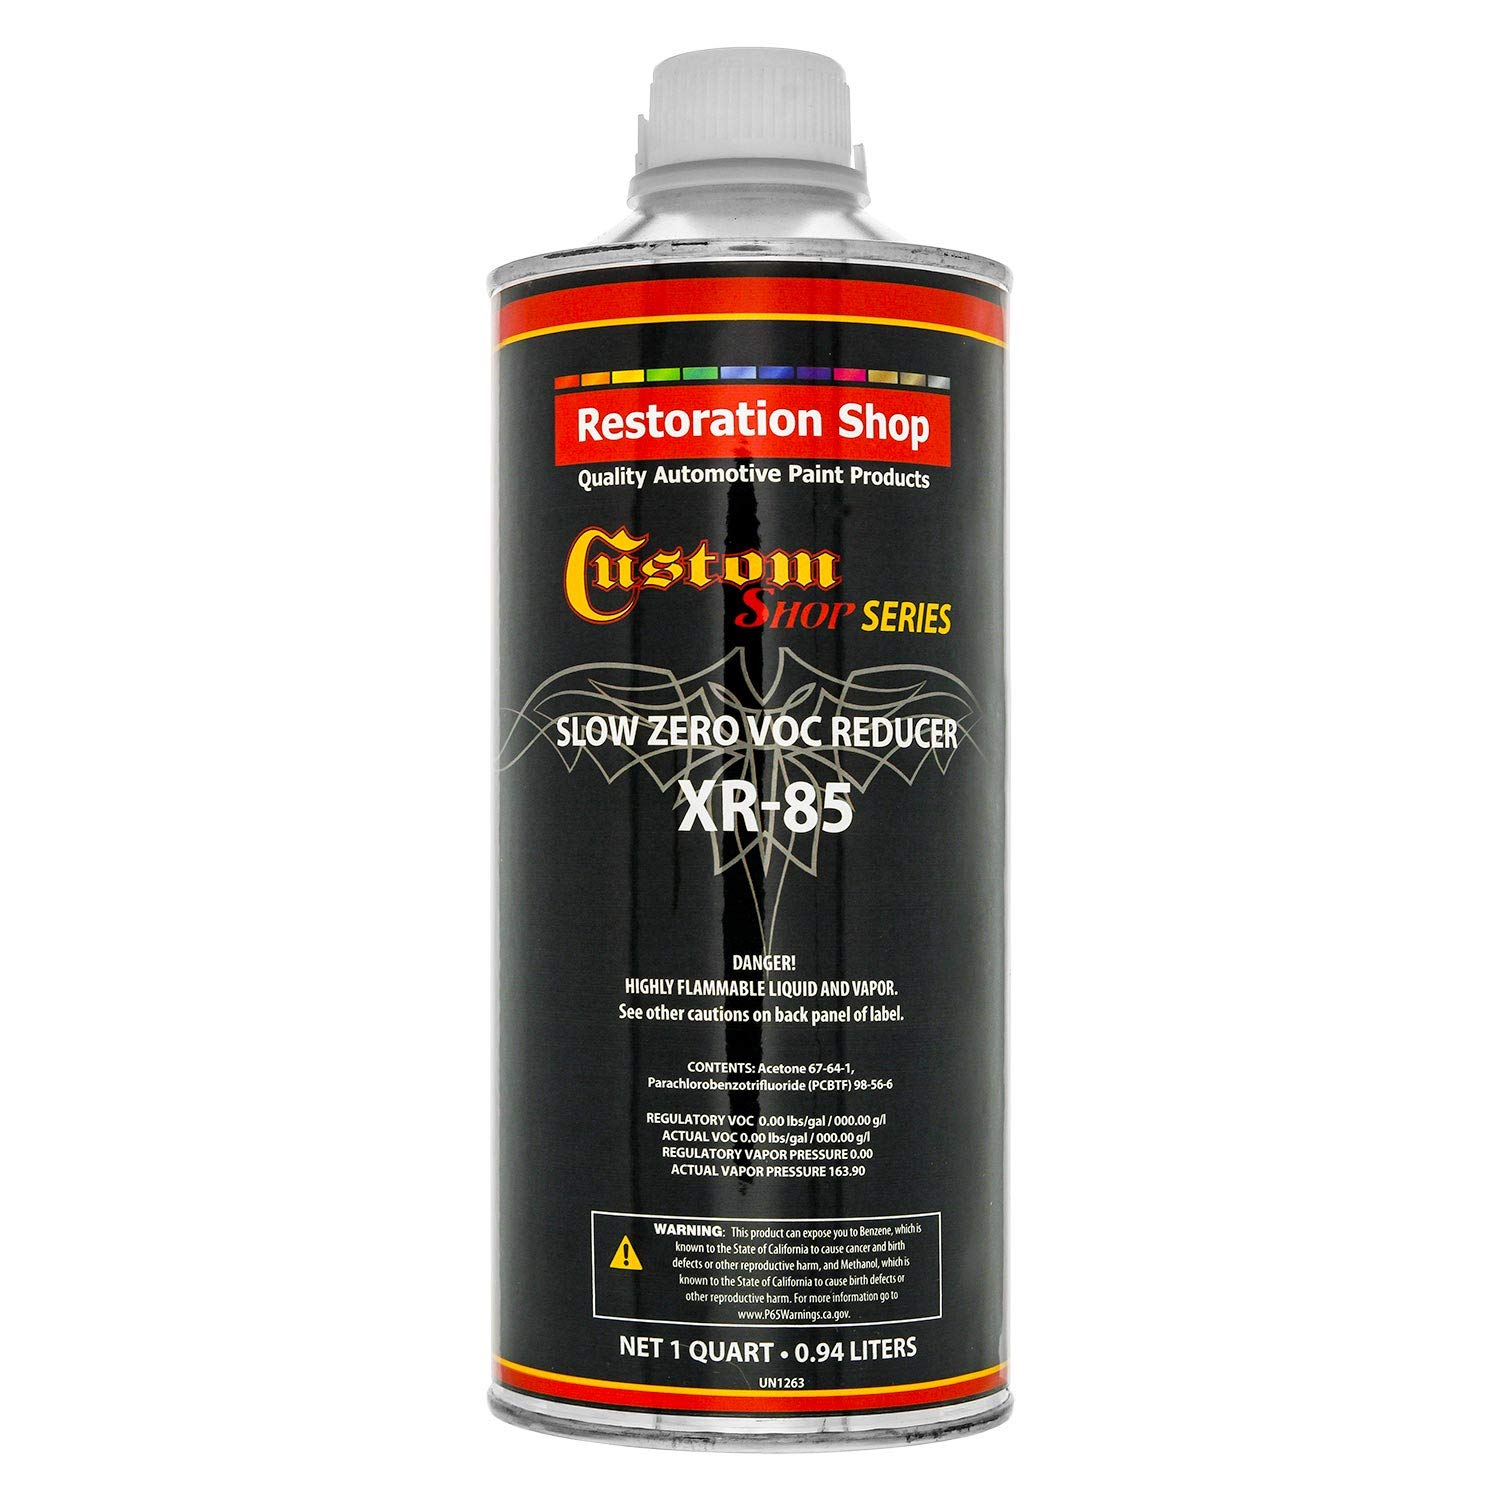 Restoration Shop/Custom Shop - XR85 Slow Zero V.O.C. Urethane Reducer (Quart/32 Ounce) for Automotive Paint and Industrial Paint Use for Low V.O.C. Compliance